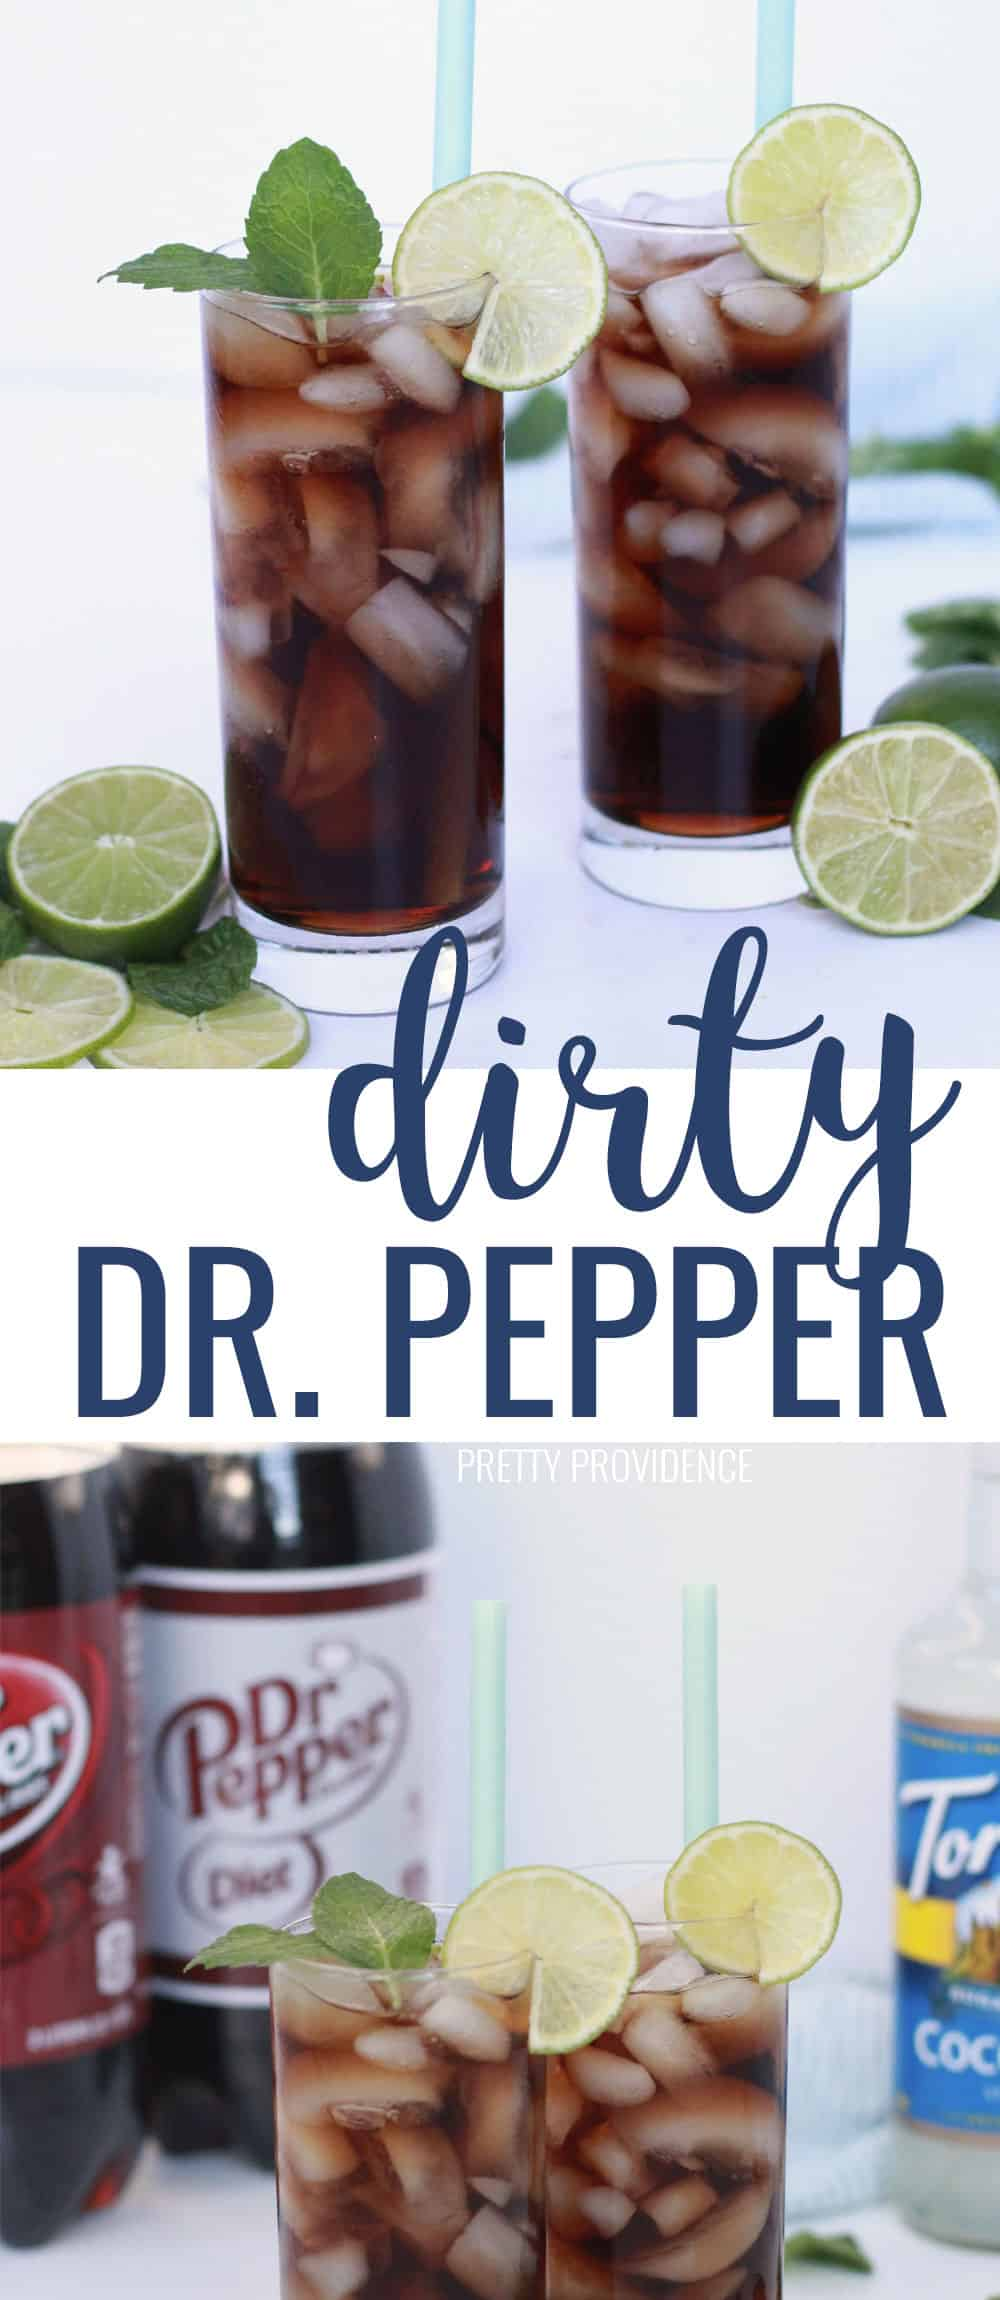 This Dirty Dr. Pepper Swig copycat is a delicious non alcoholic drink recipe with coconut syrup and lime! Our favorite Summer drink recipe! 